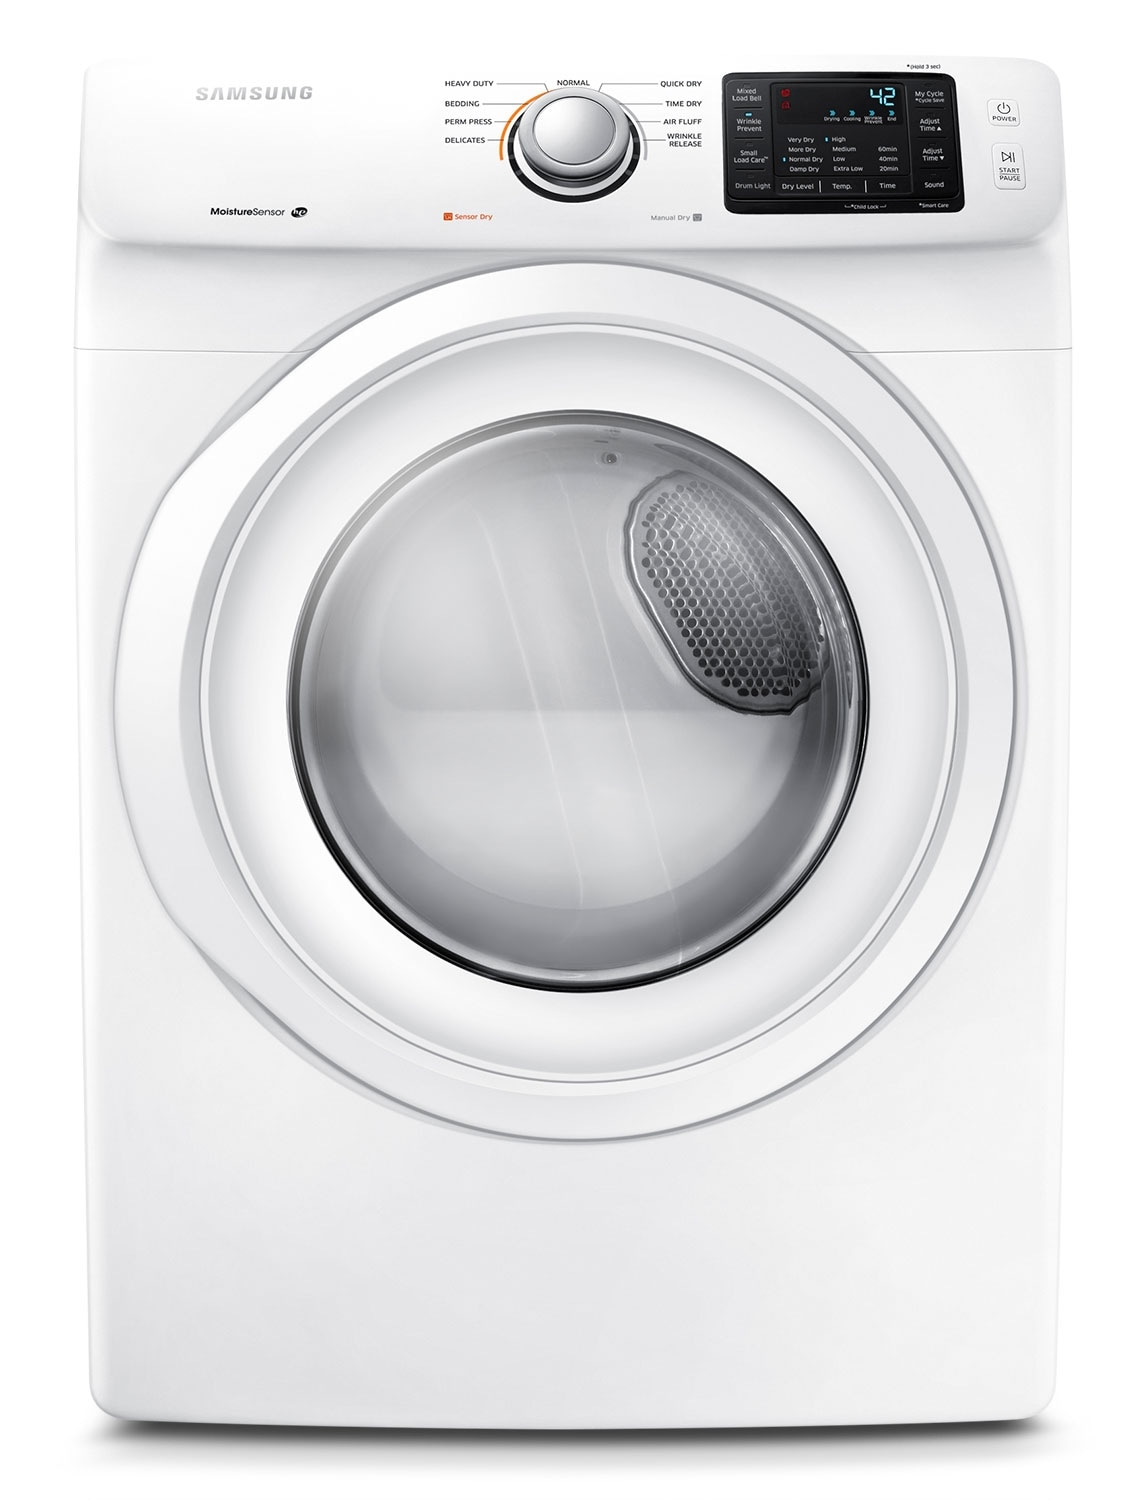 Samsung 7.5 Cu. Ft. Electric Dryer - White